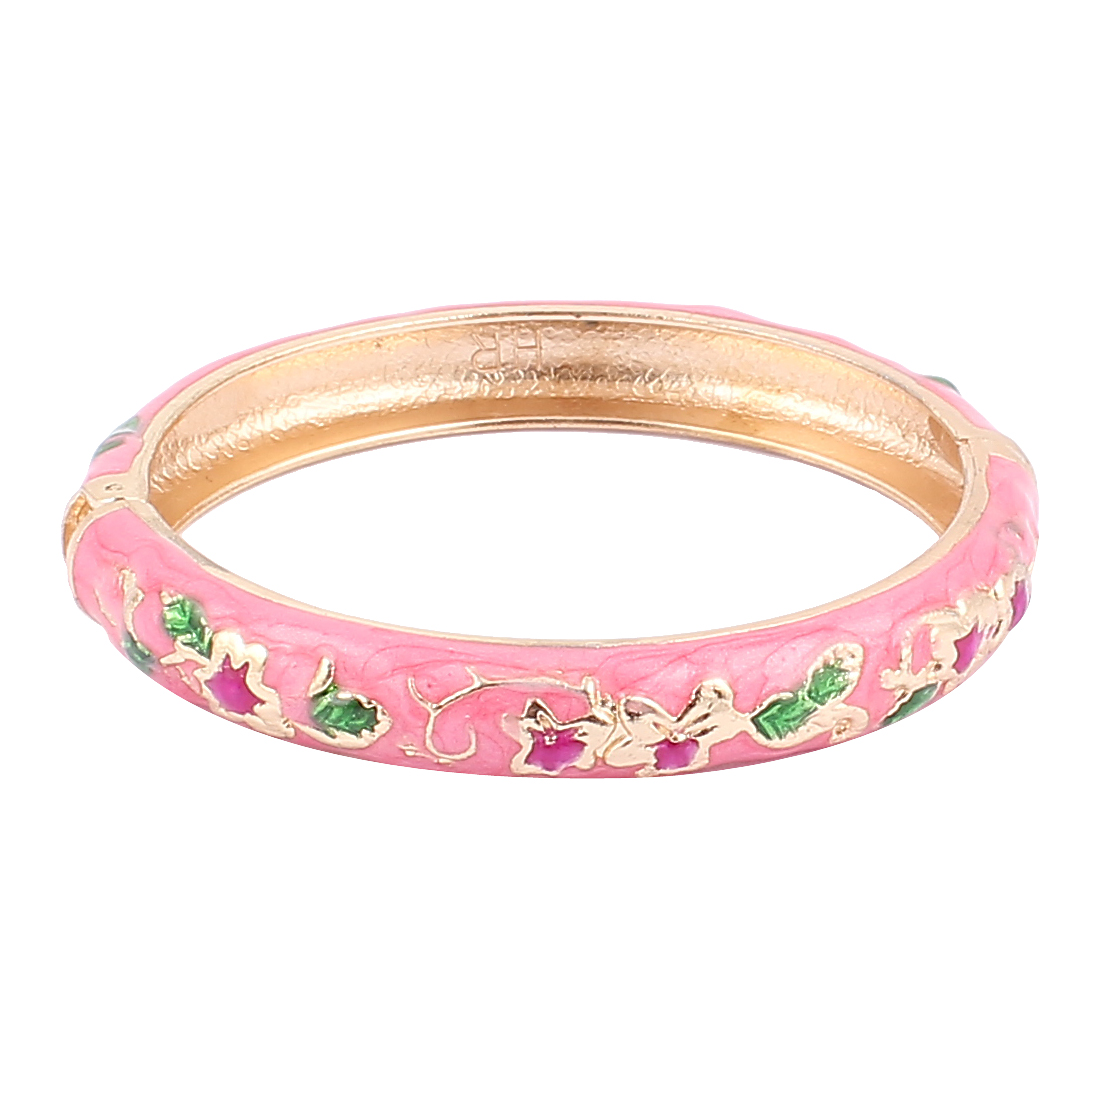 Woman Lady Spring Hinged Round Cuff Flower Carved Enamel Bracelet Bangle Pink